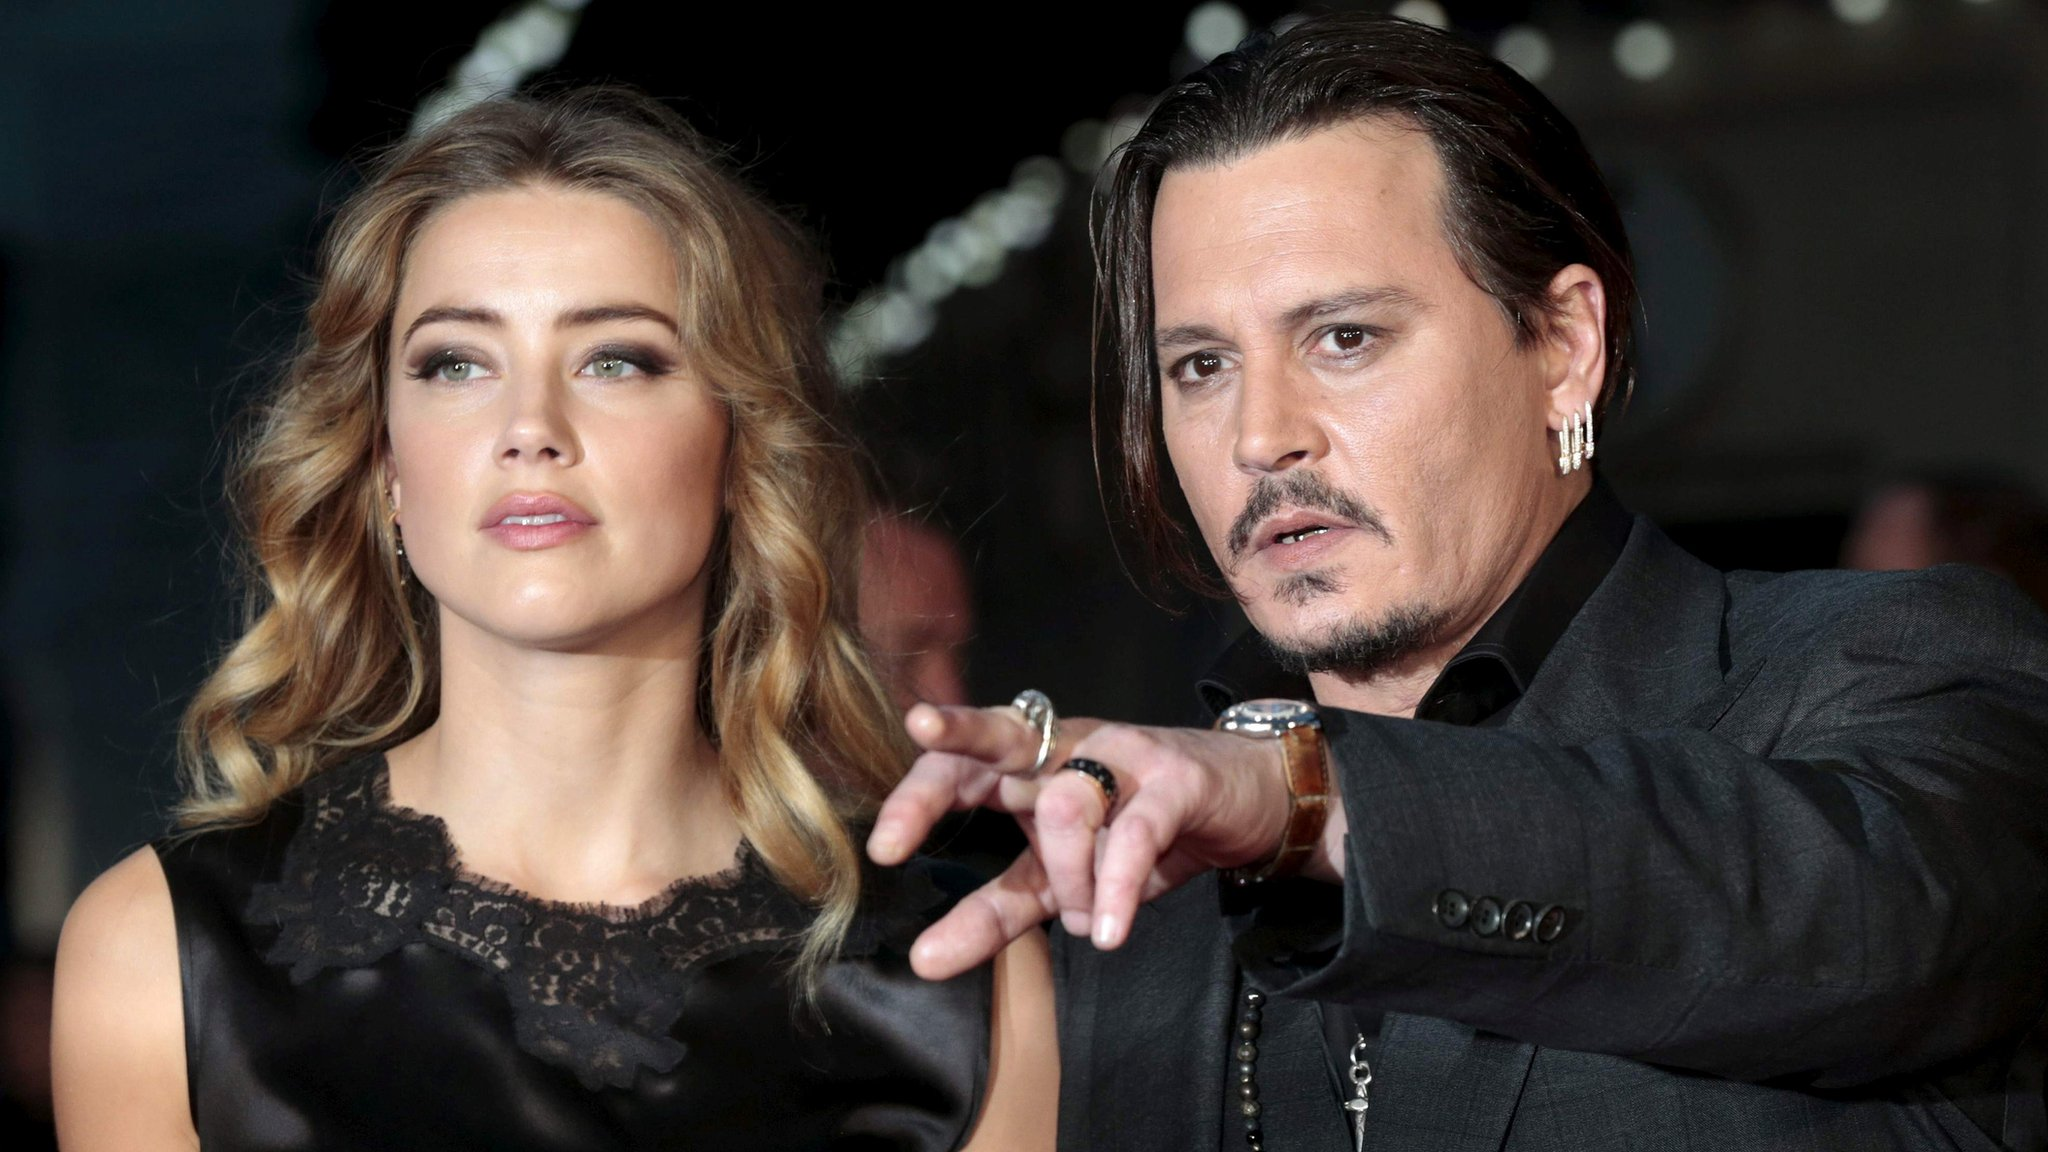 Johnny Depp and Amber Heard up for worst acting awards